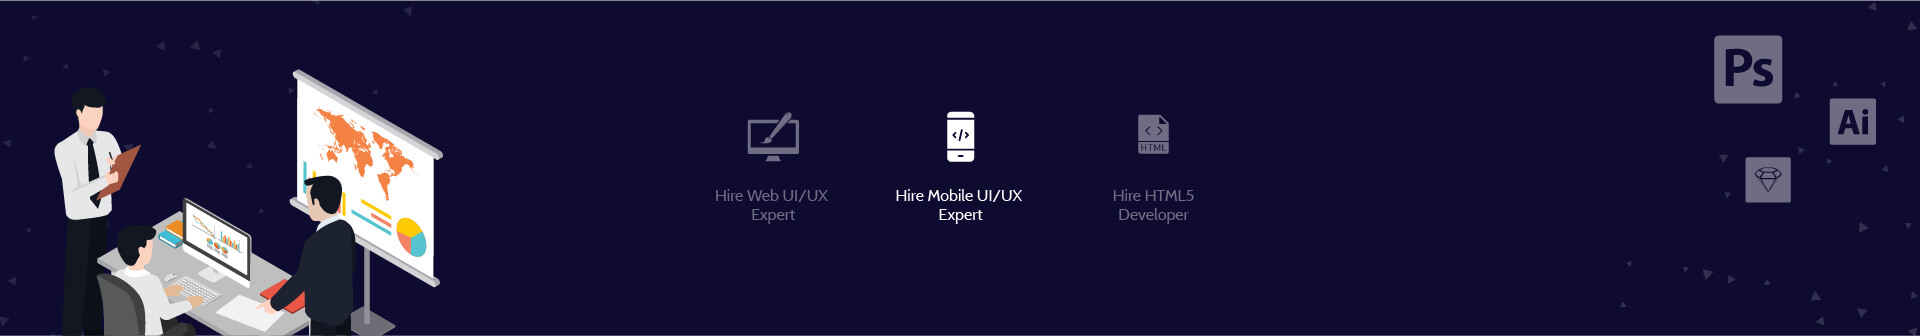 Hire Mobile UI UX Expert